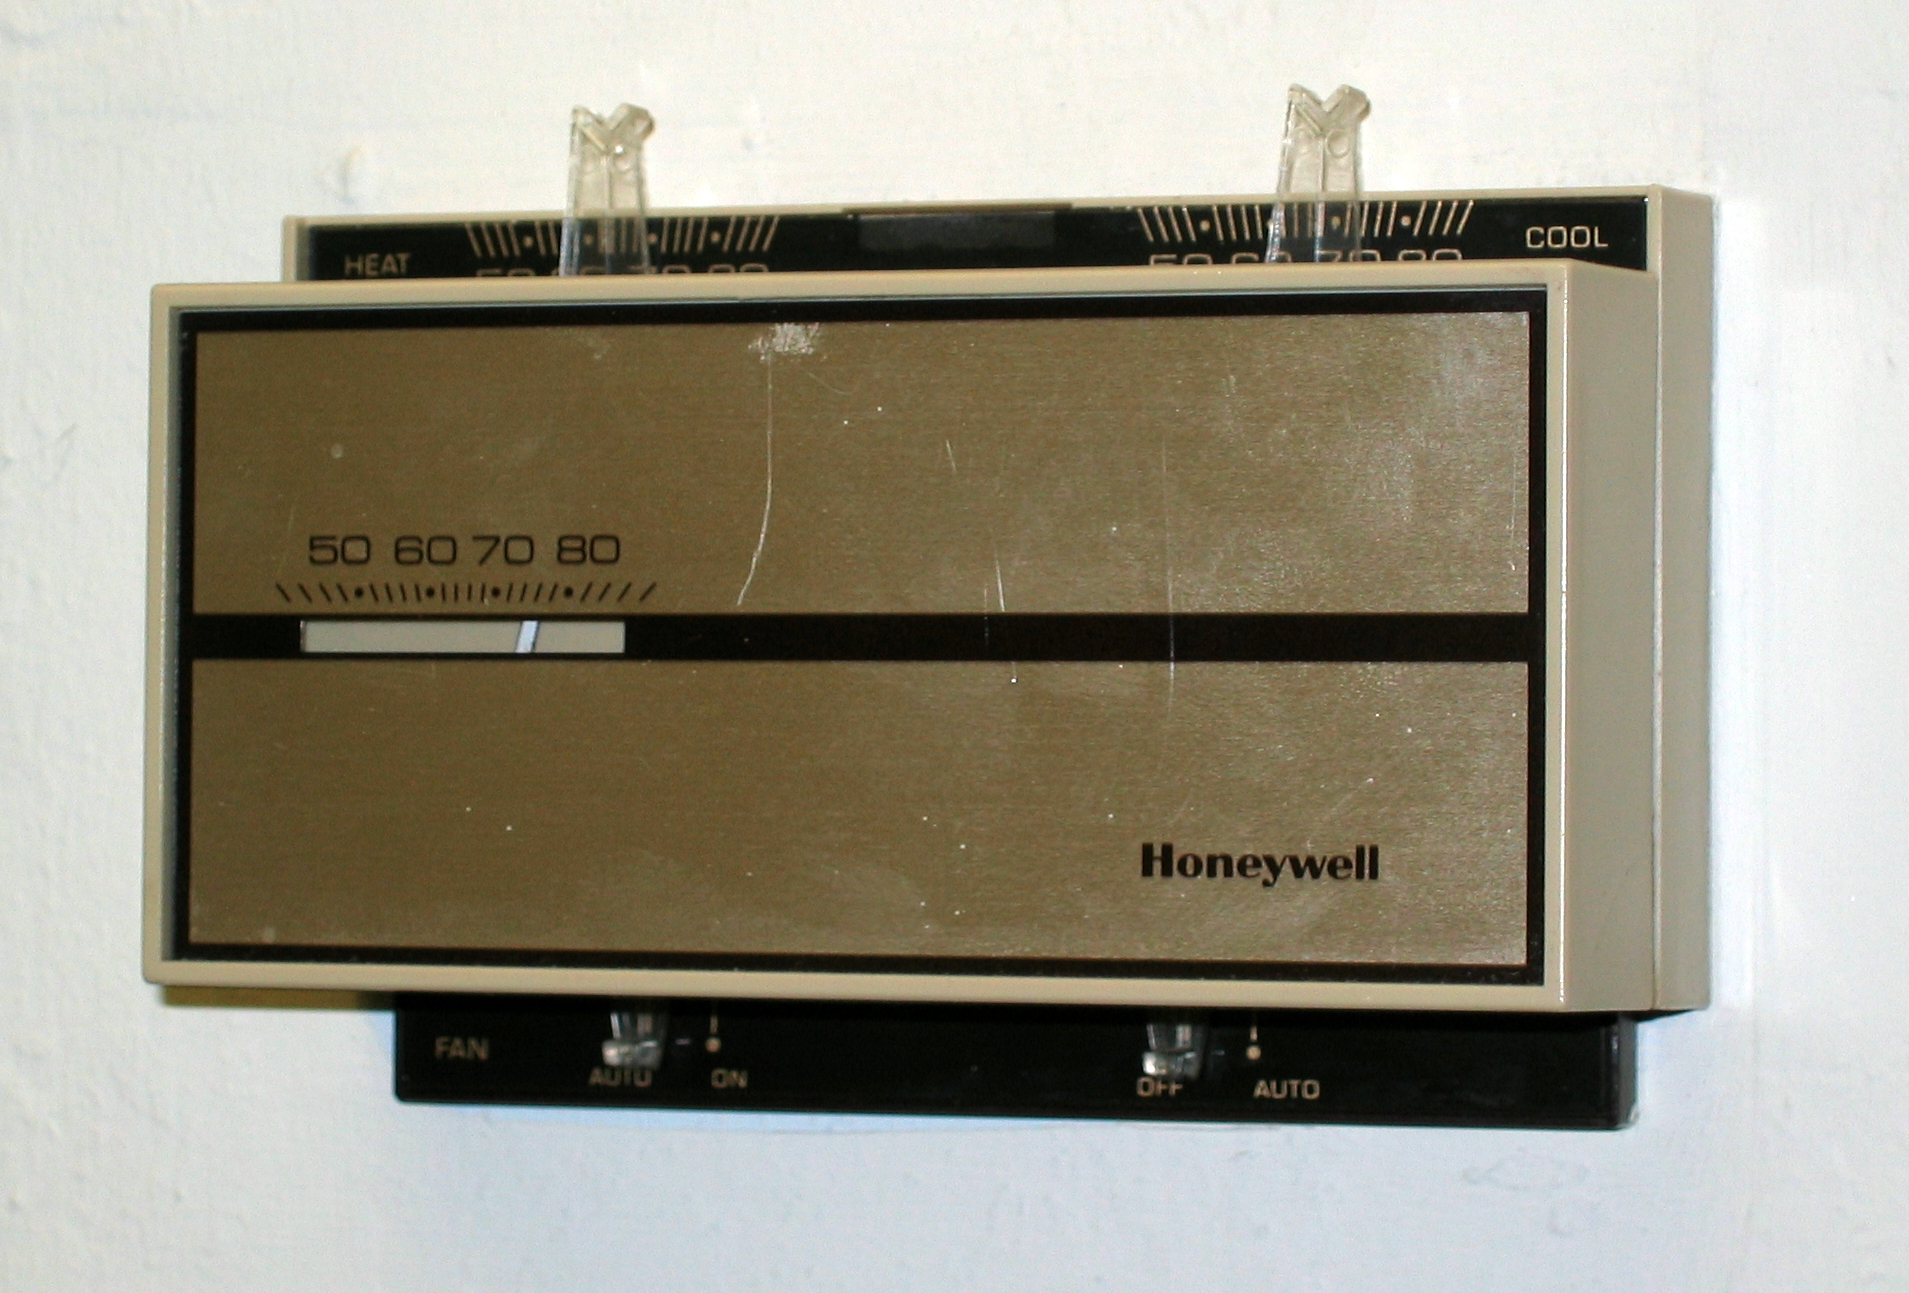 Old Round Honeywell Thermostat Manual Troubleshooting